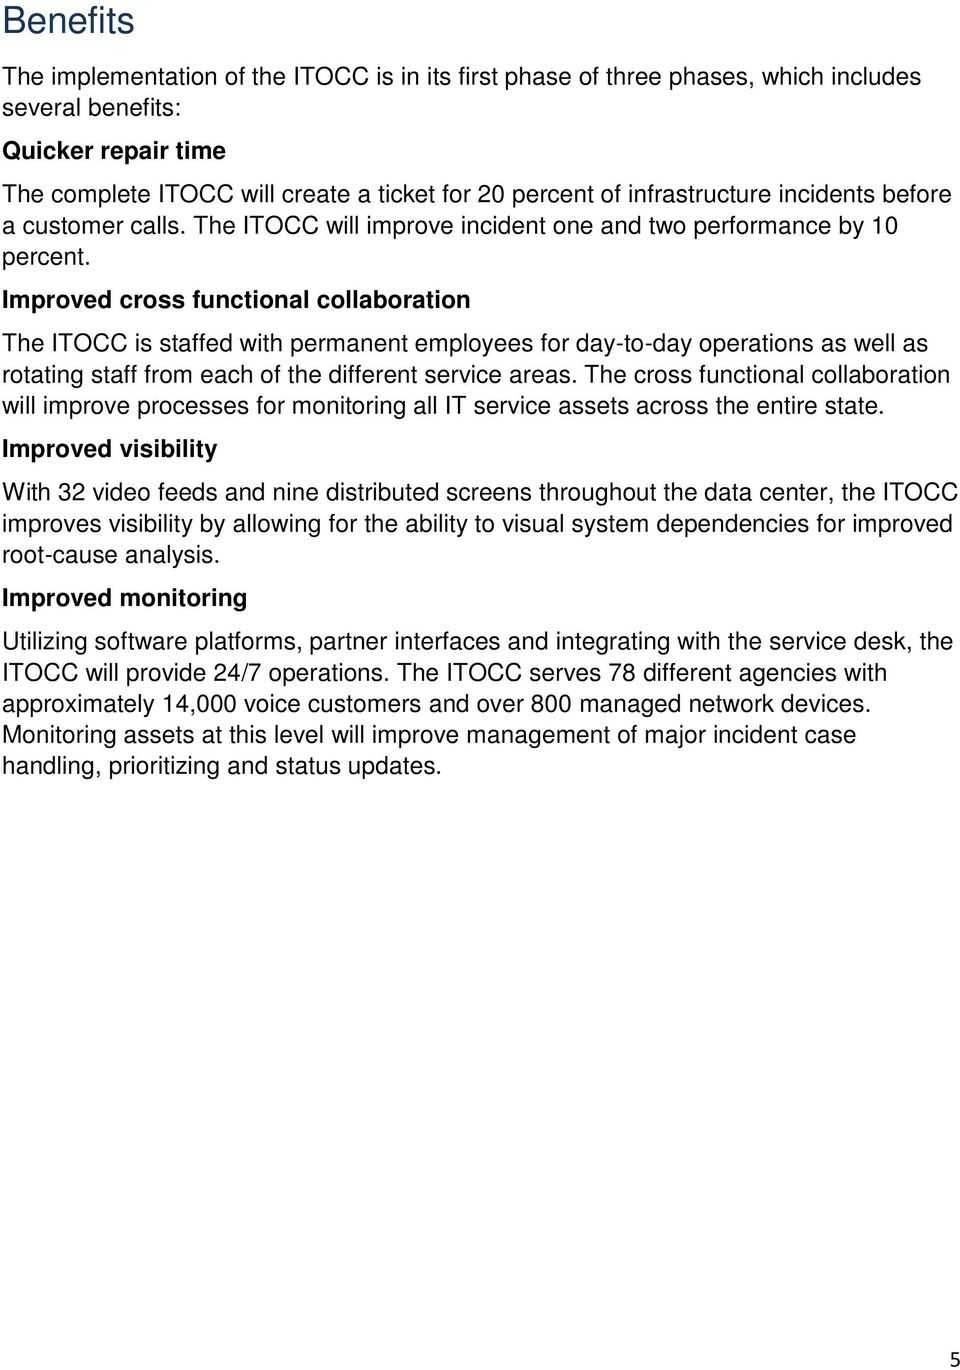 Improved cross functional collaboration The ITOCC is staffed with permanent employees for day-to-day operations as well as rotating staff from each of the different service areas.